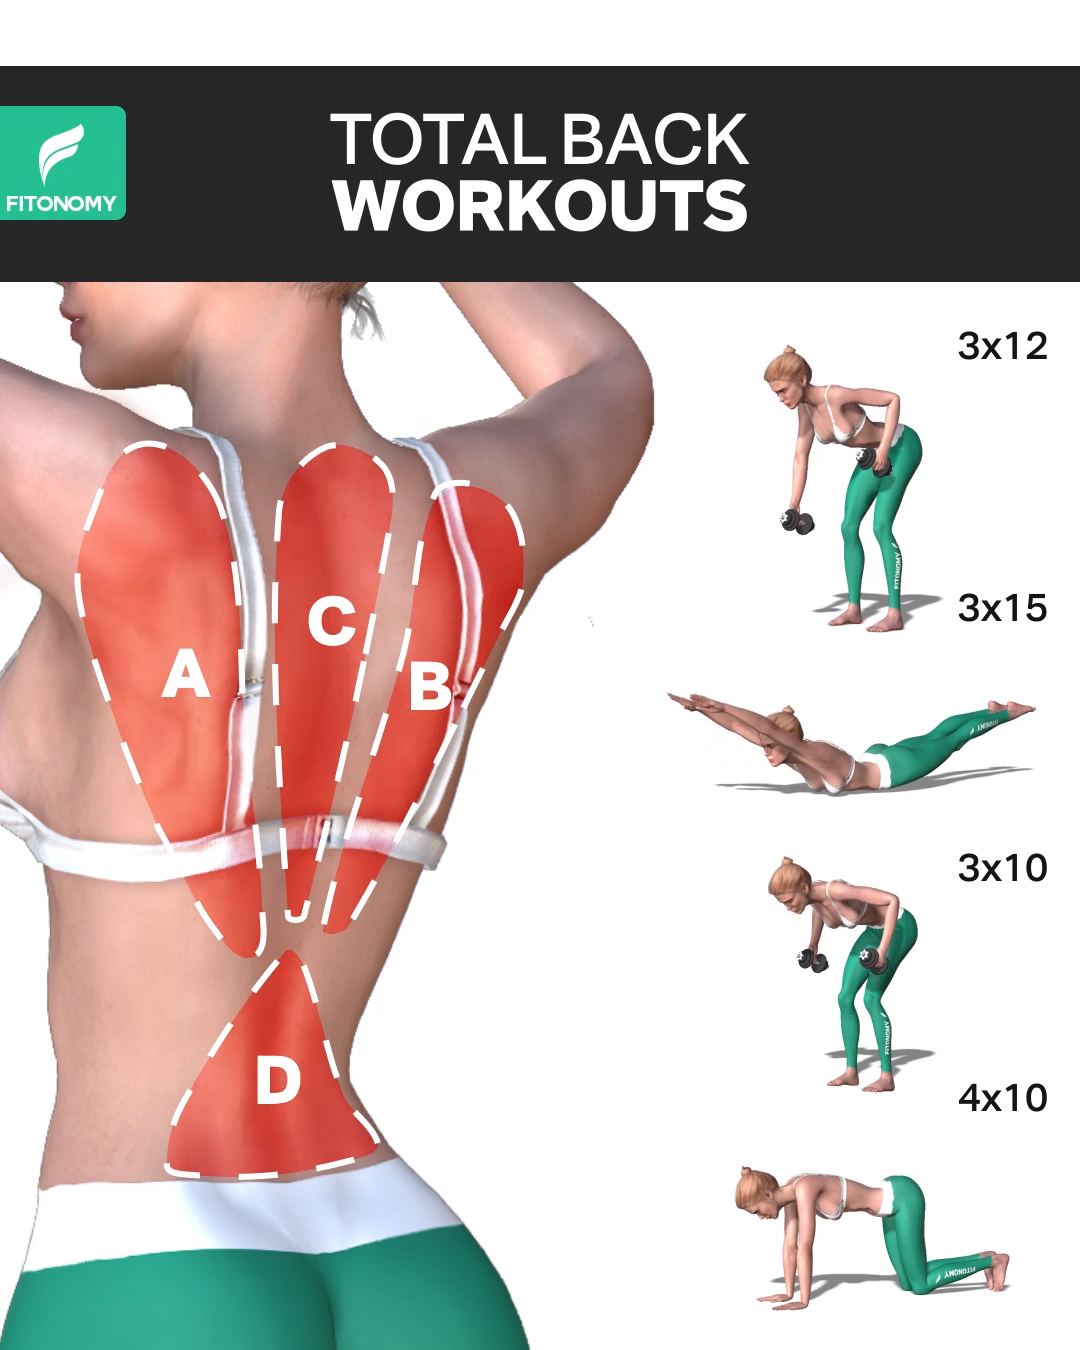 TOTAL BACK WORKOUTS  #exercisesforupperback